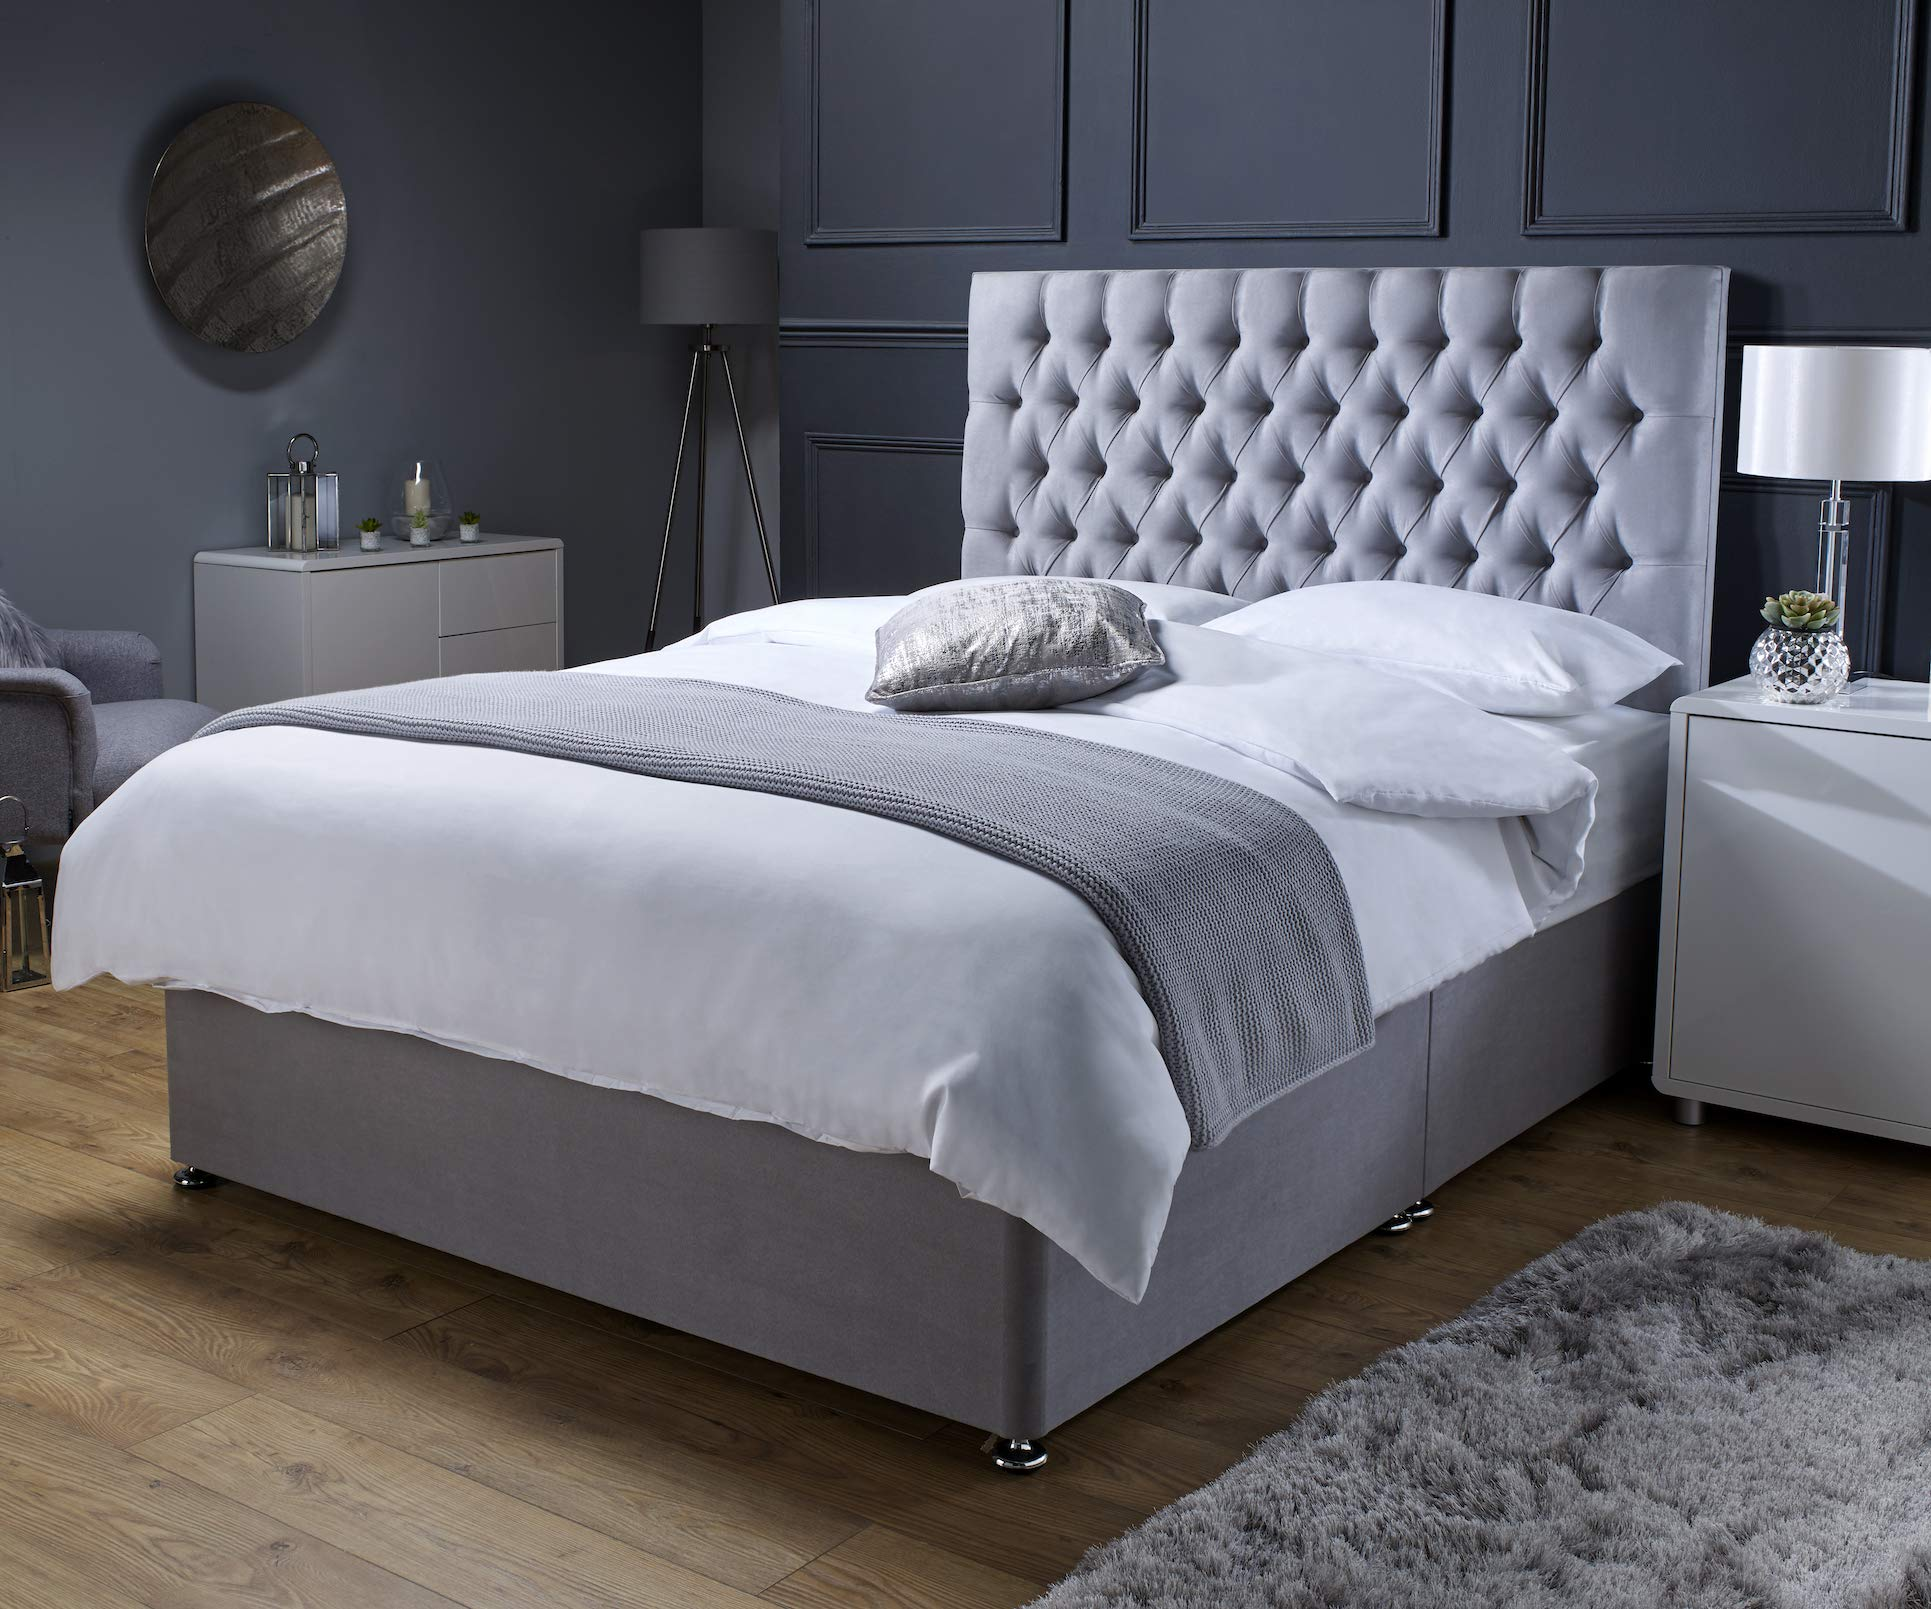 Revive Direct Premium - Grey Suede Double Bed with Mattress (Memory Foam  Mattress), Designer Headboard and Chrome Feet - 3 Free Drawers Included -